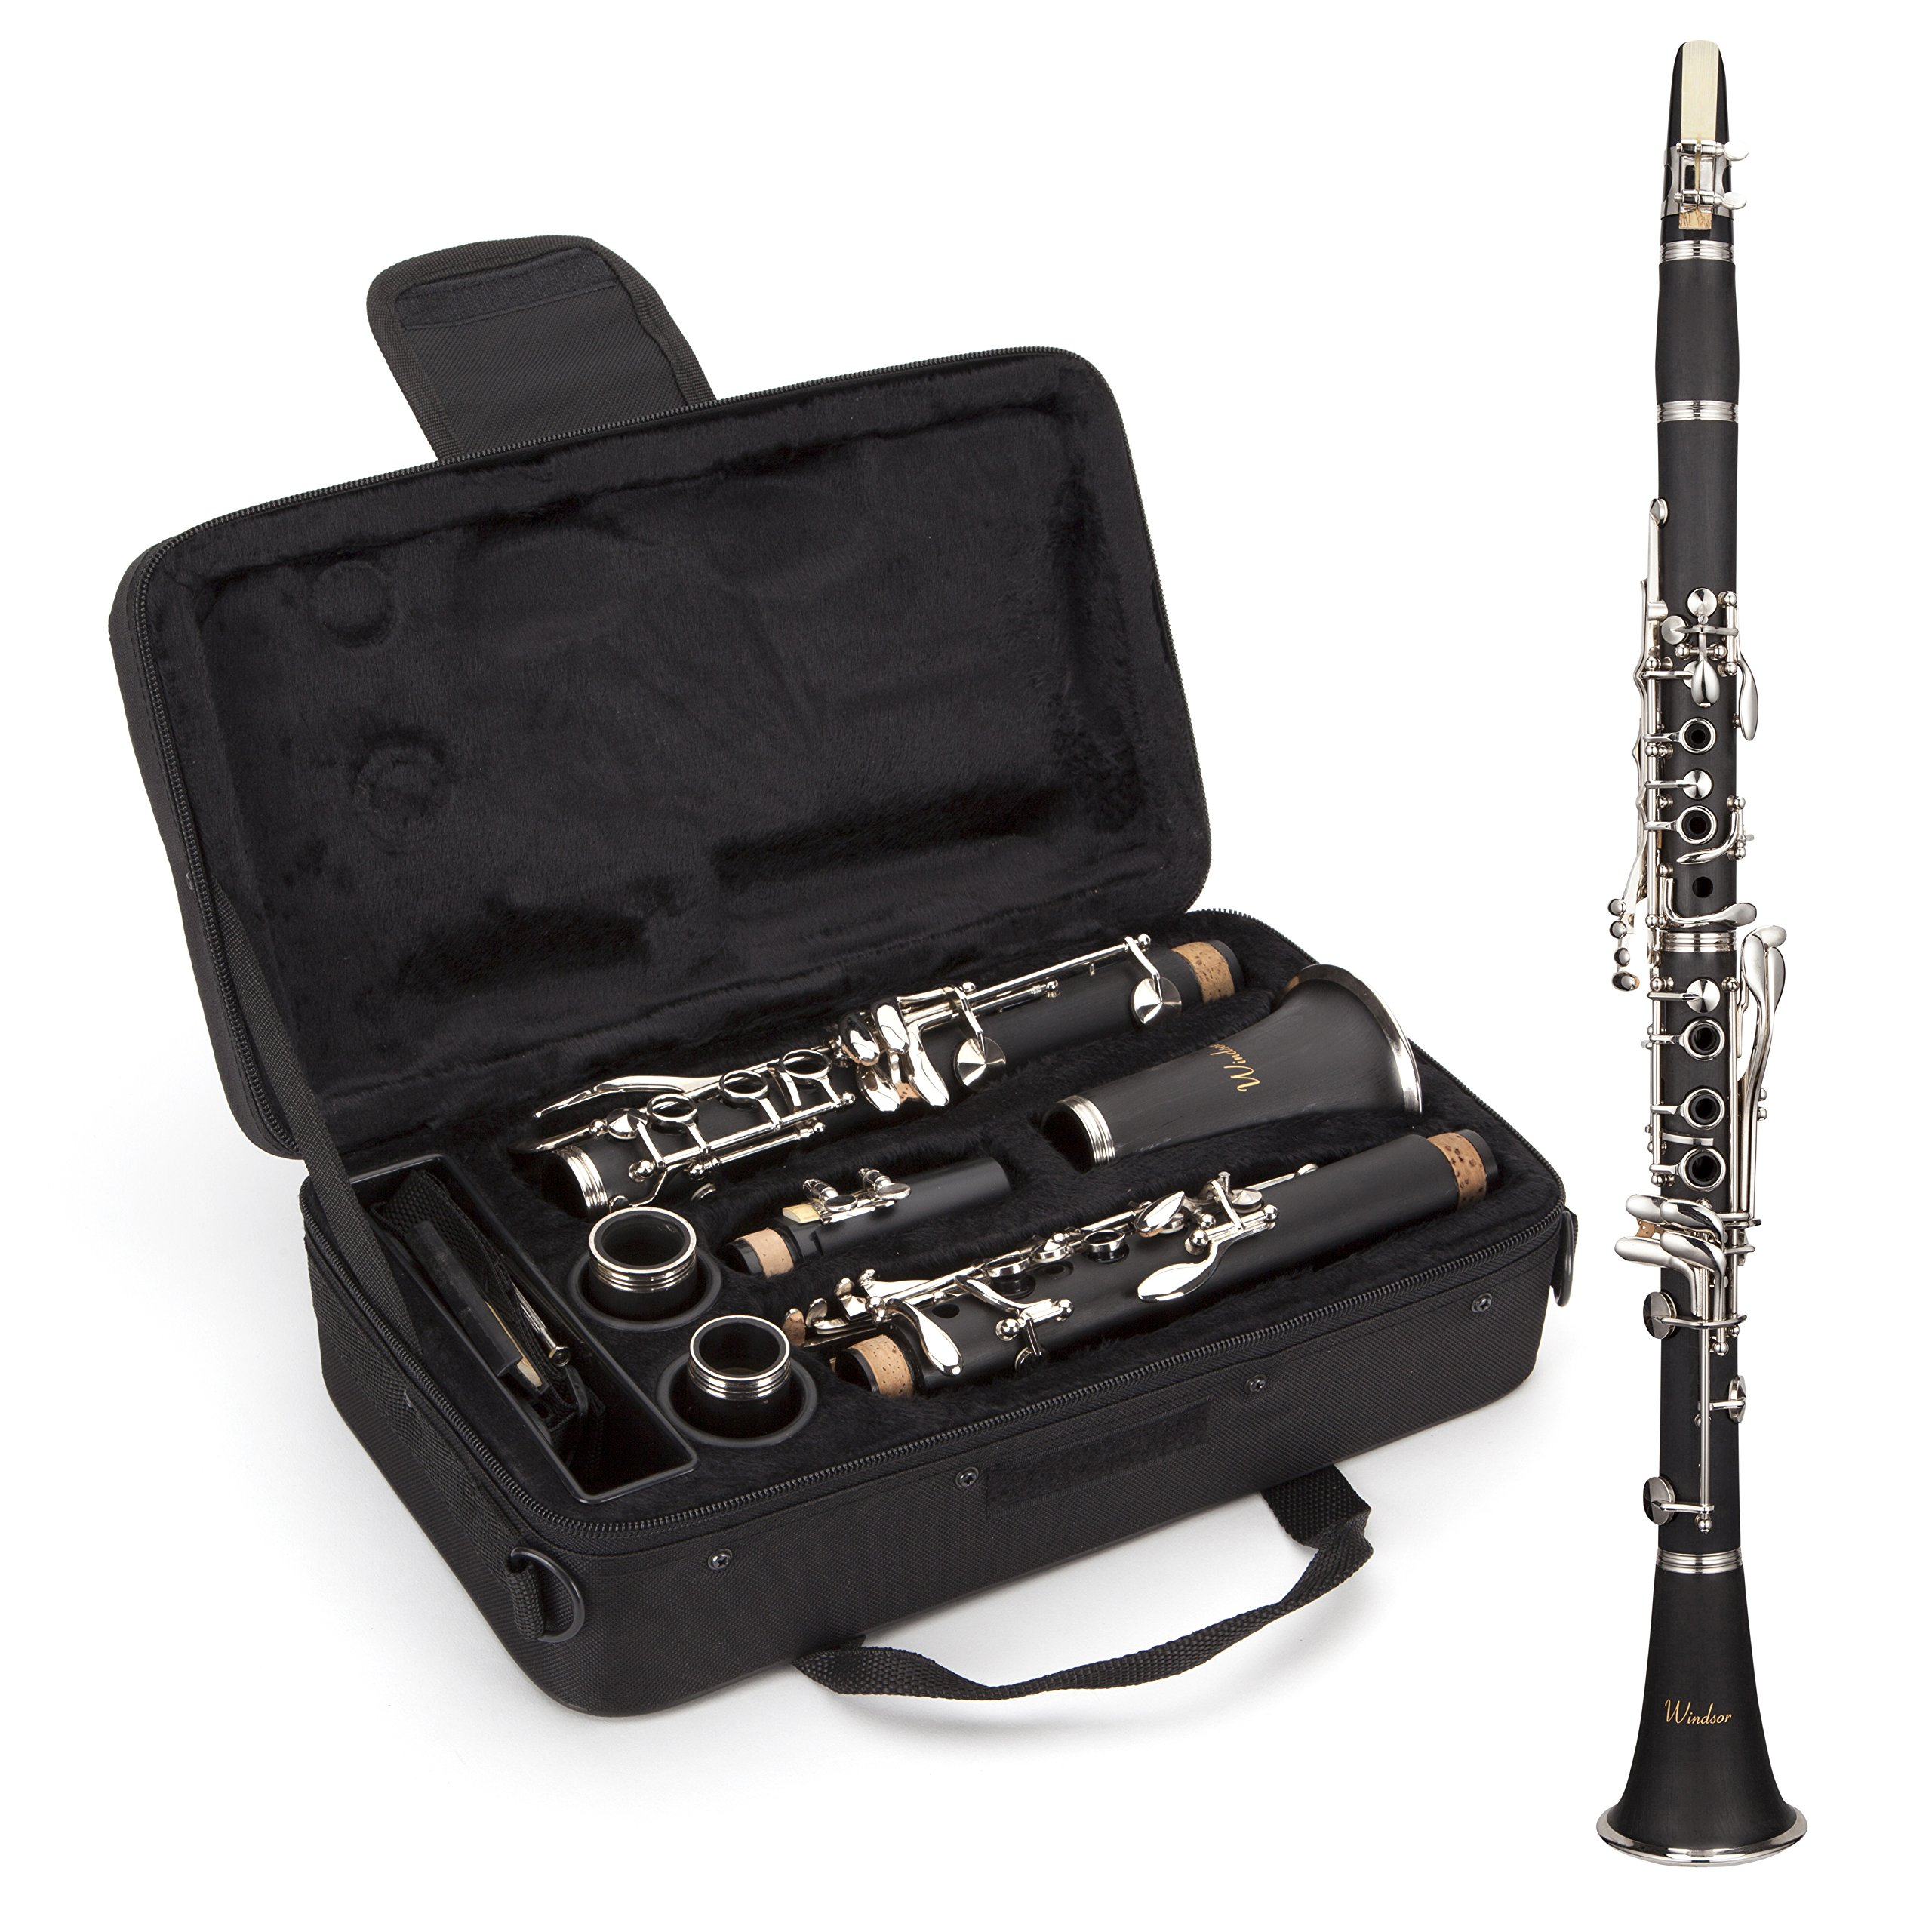 Windsor Student Bb Clarinet Includes Hard Case (MI-1003) by Windsor